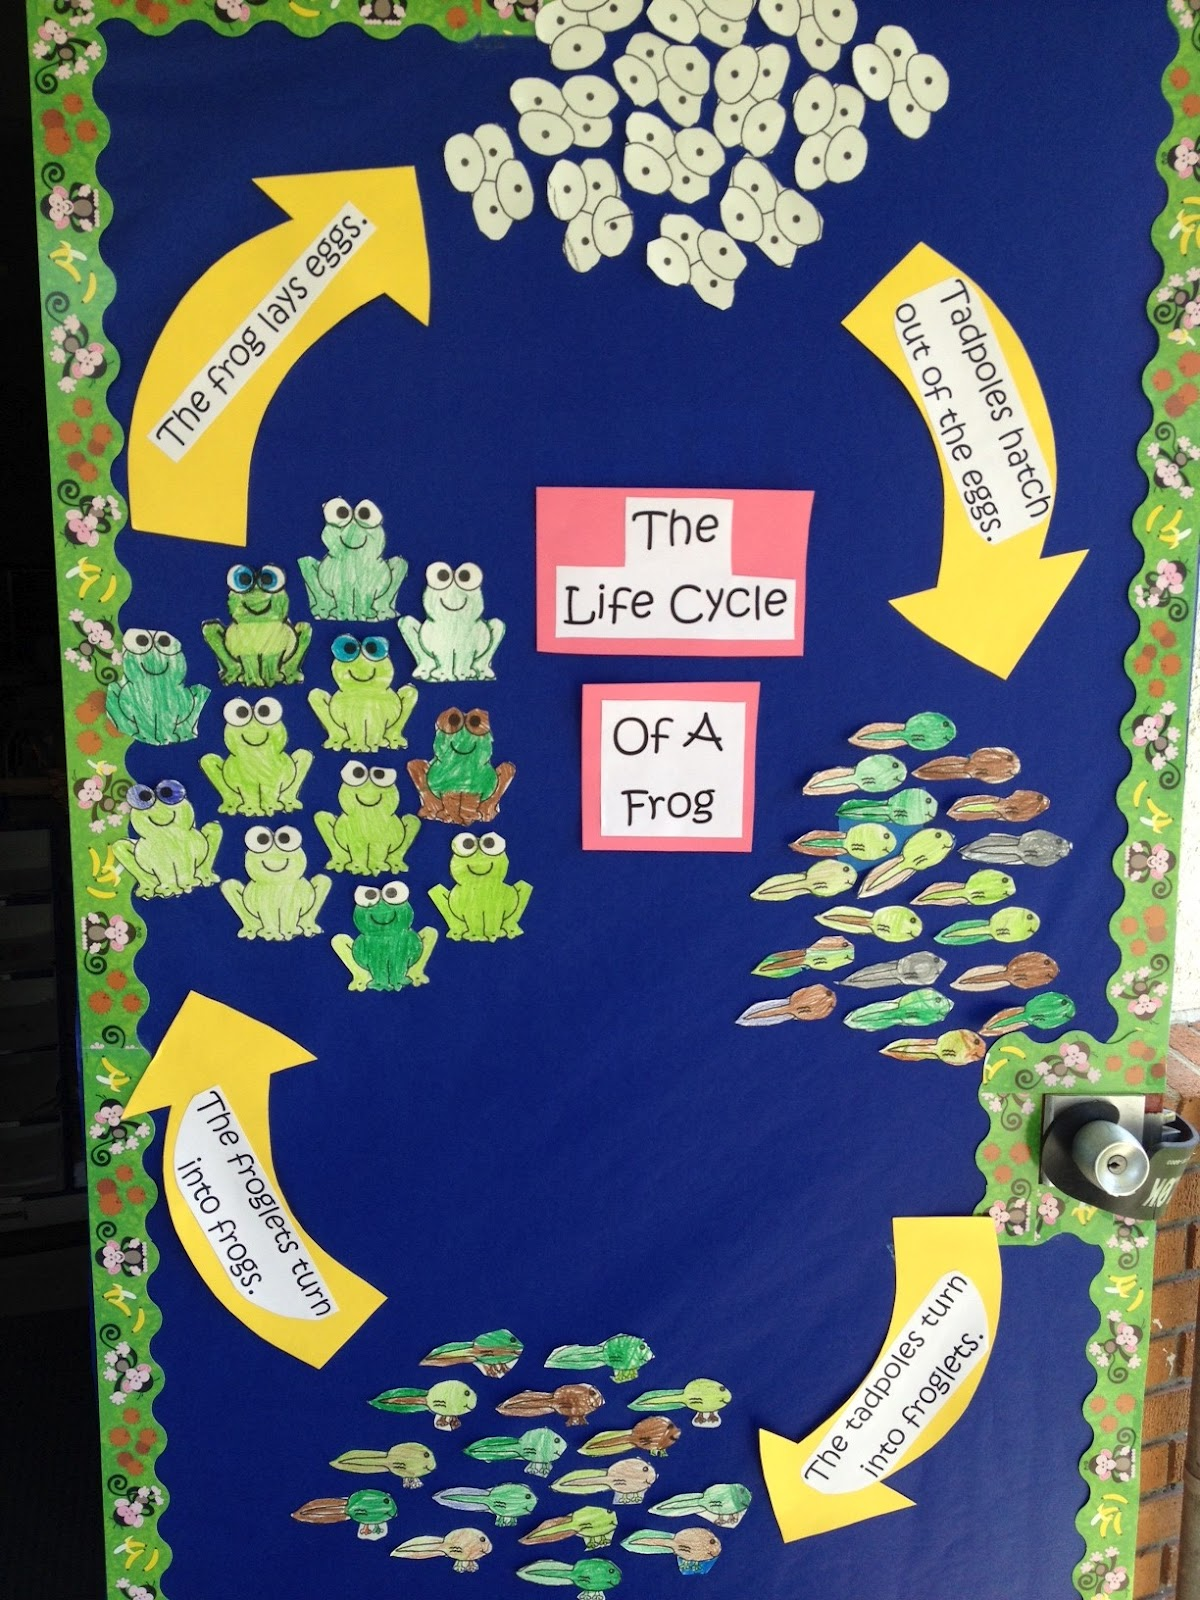 Life Cycle Of A Frog And Adorable Frog Book